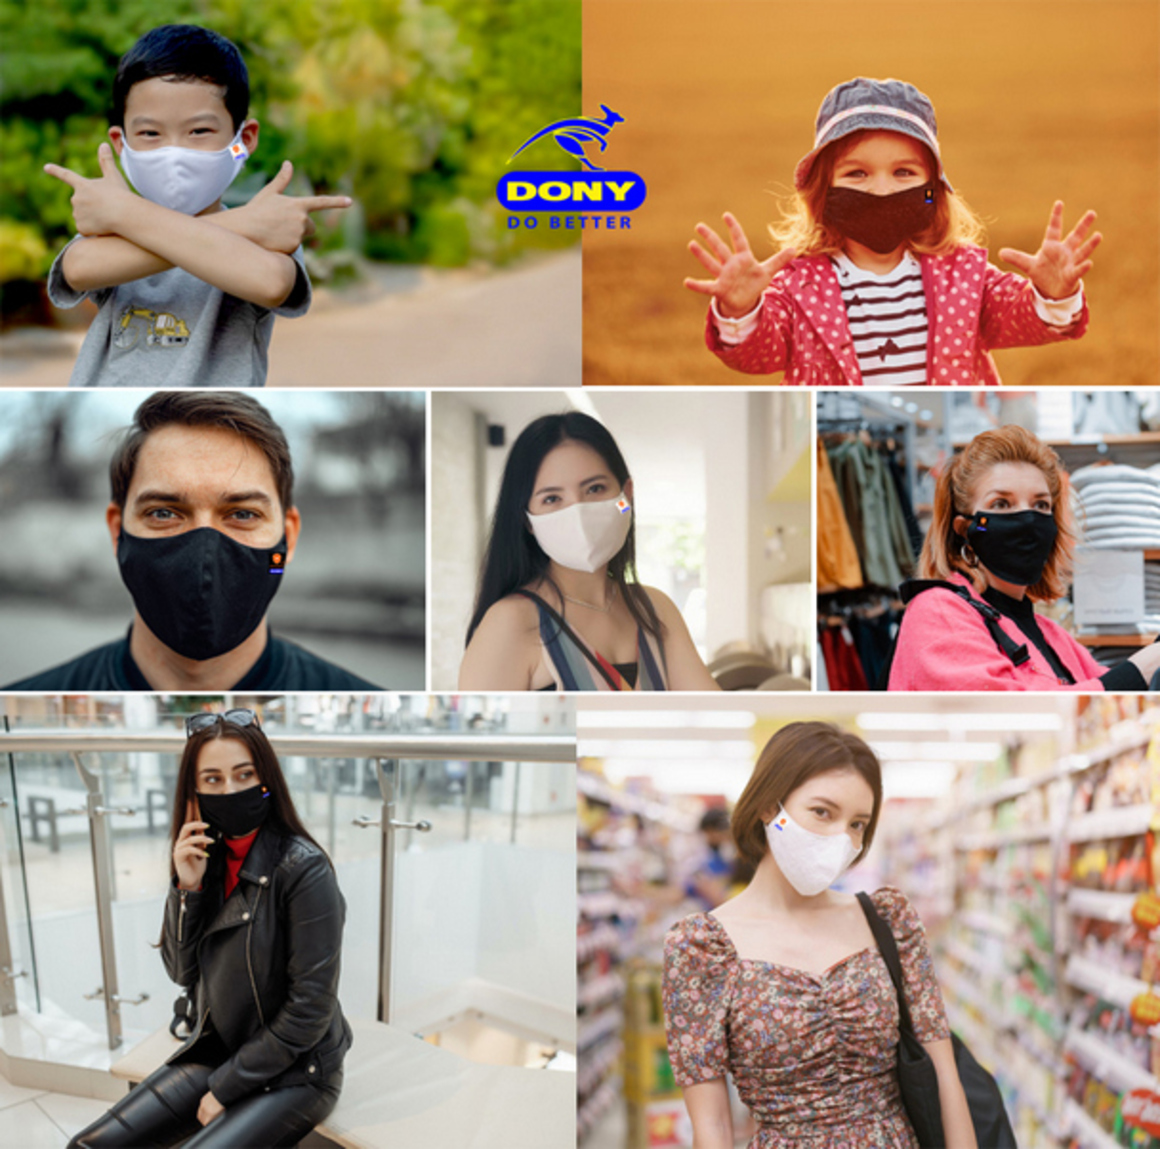 DONY does Protective Equipment Better: Full Protection From Head to Toe